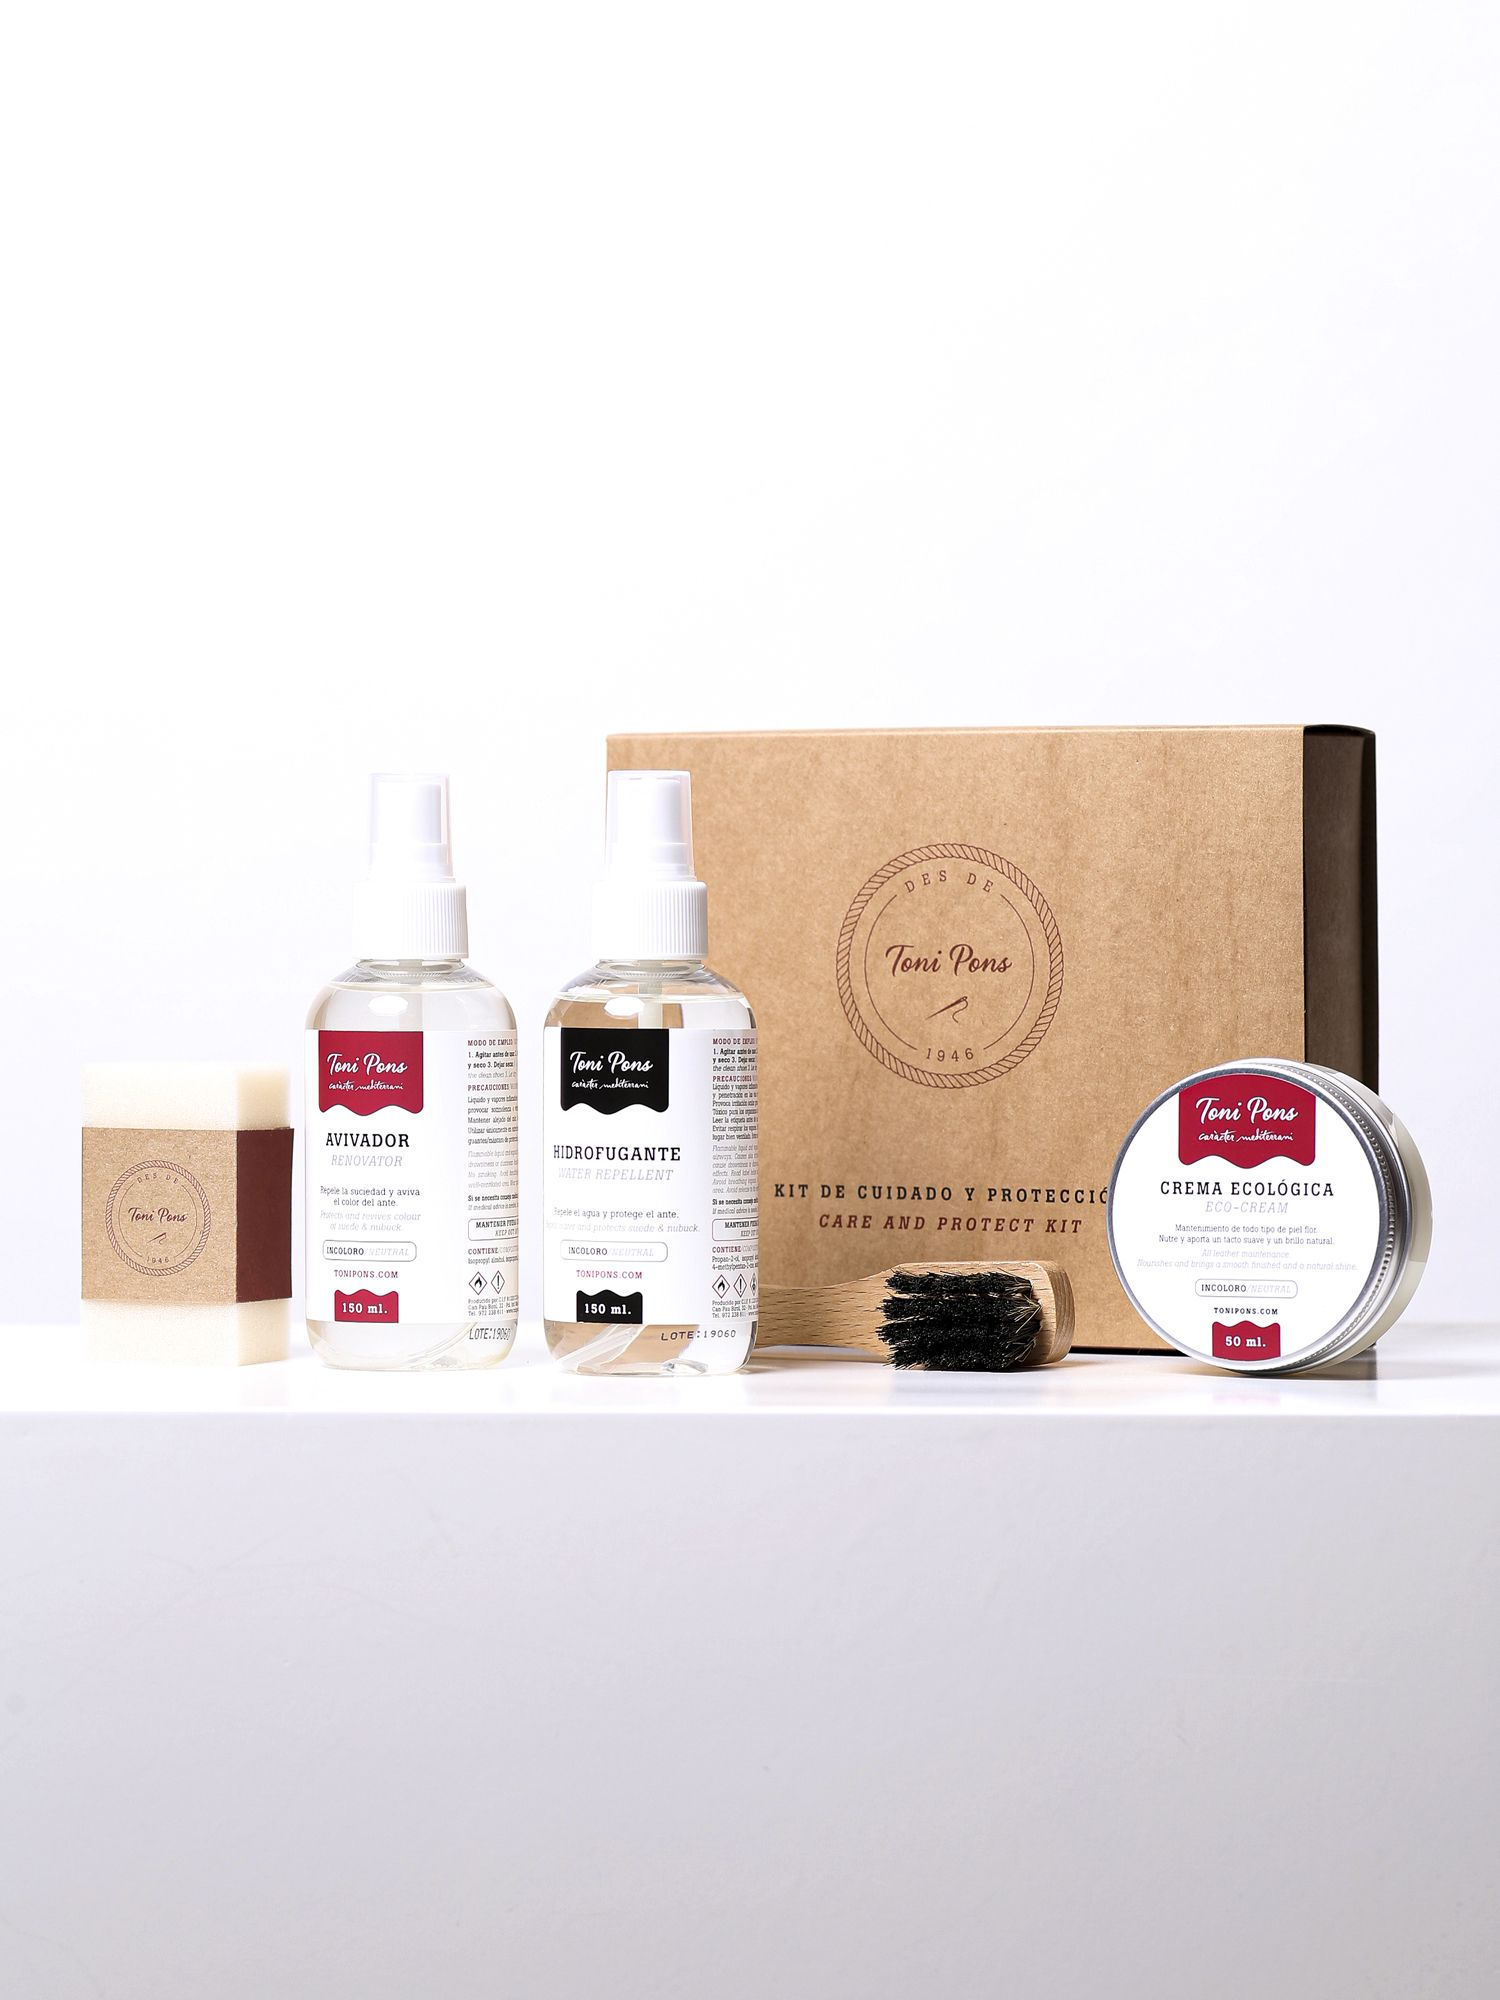 KIT COMPLET - Complete kit of leather and suede shoe care products.